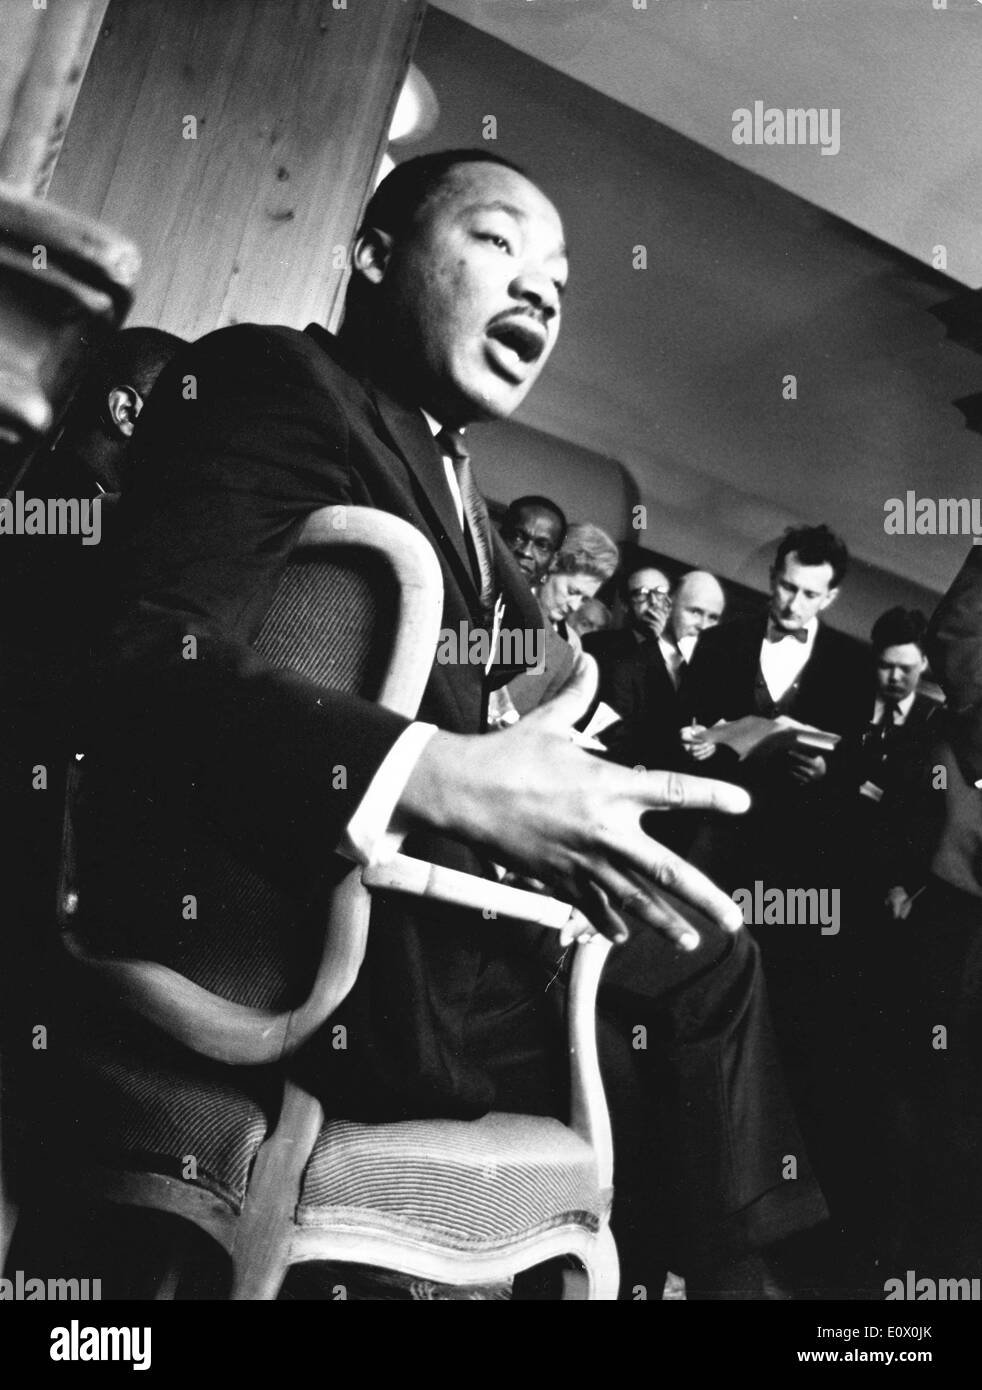 Martin Luther King Jr. in a chair speaking in London Stock Photo